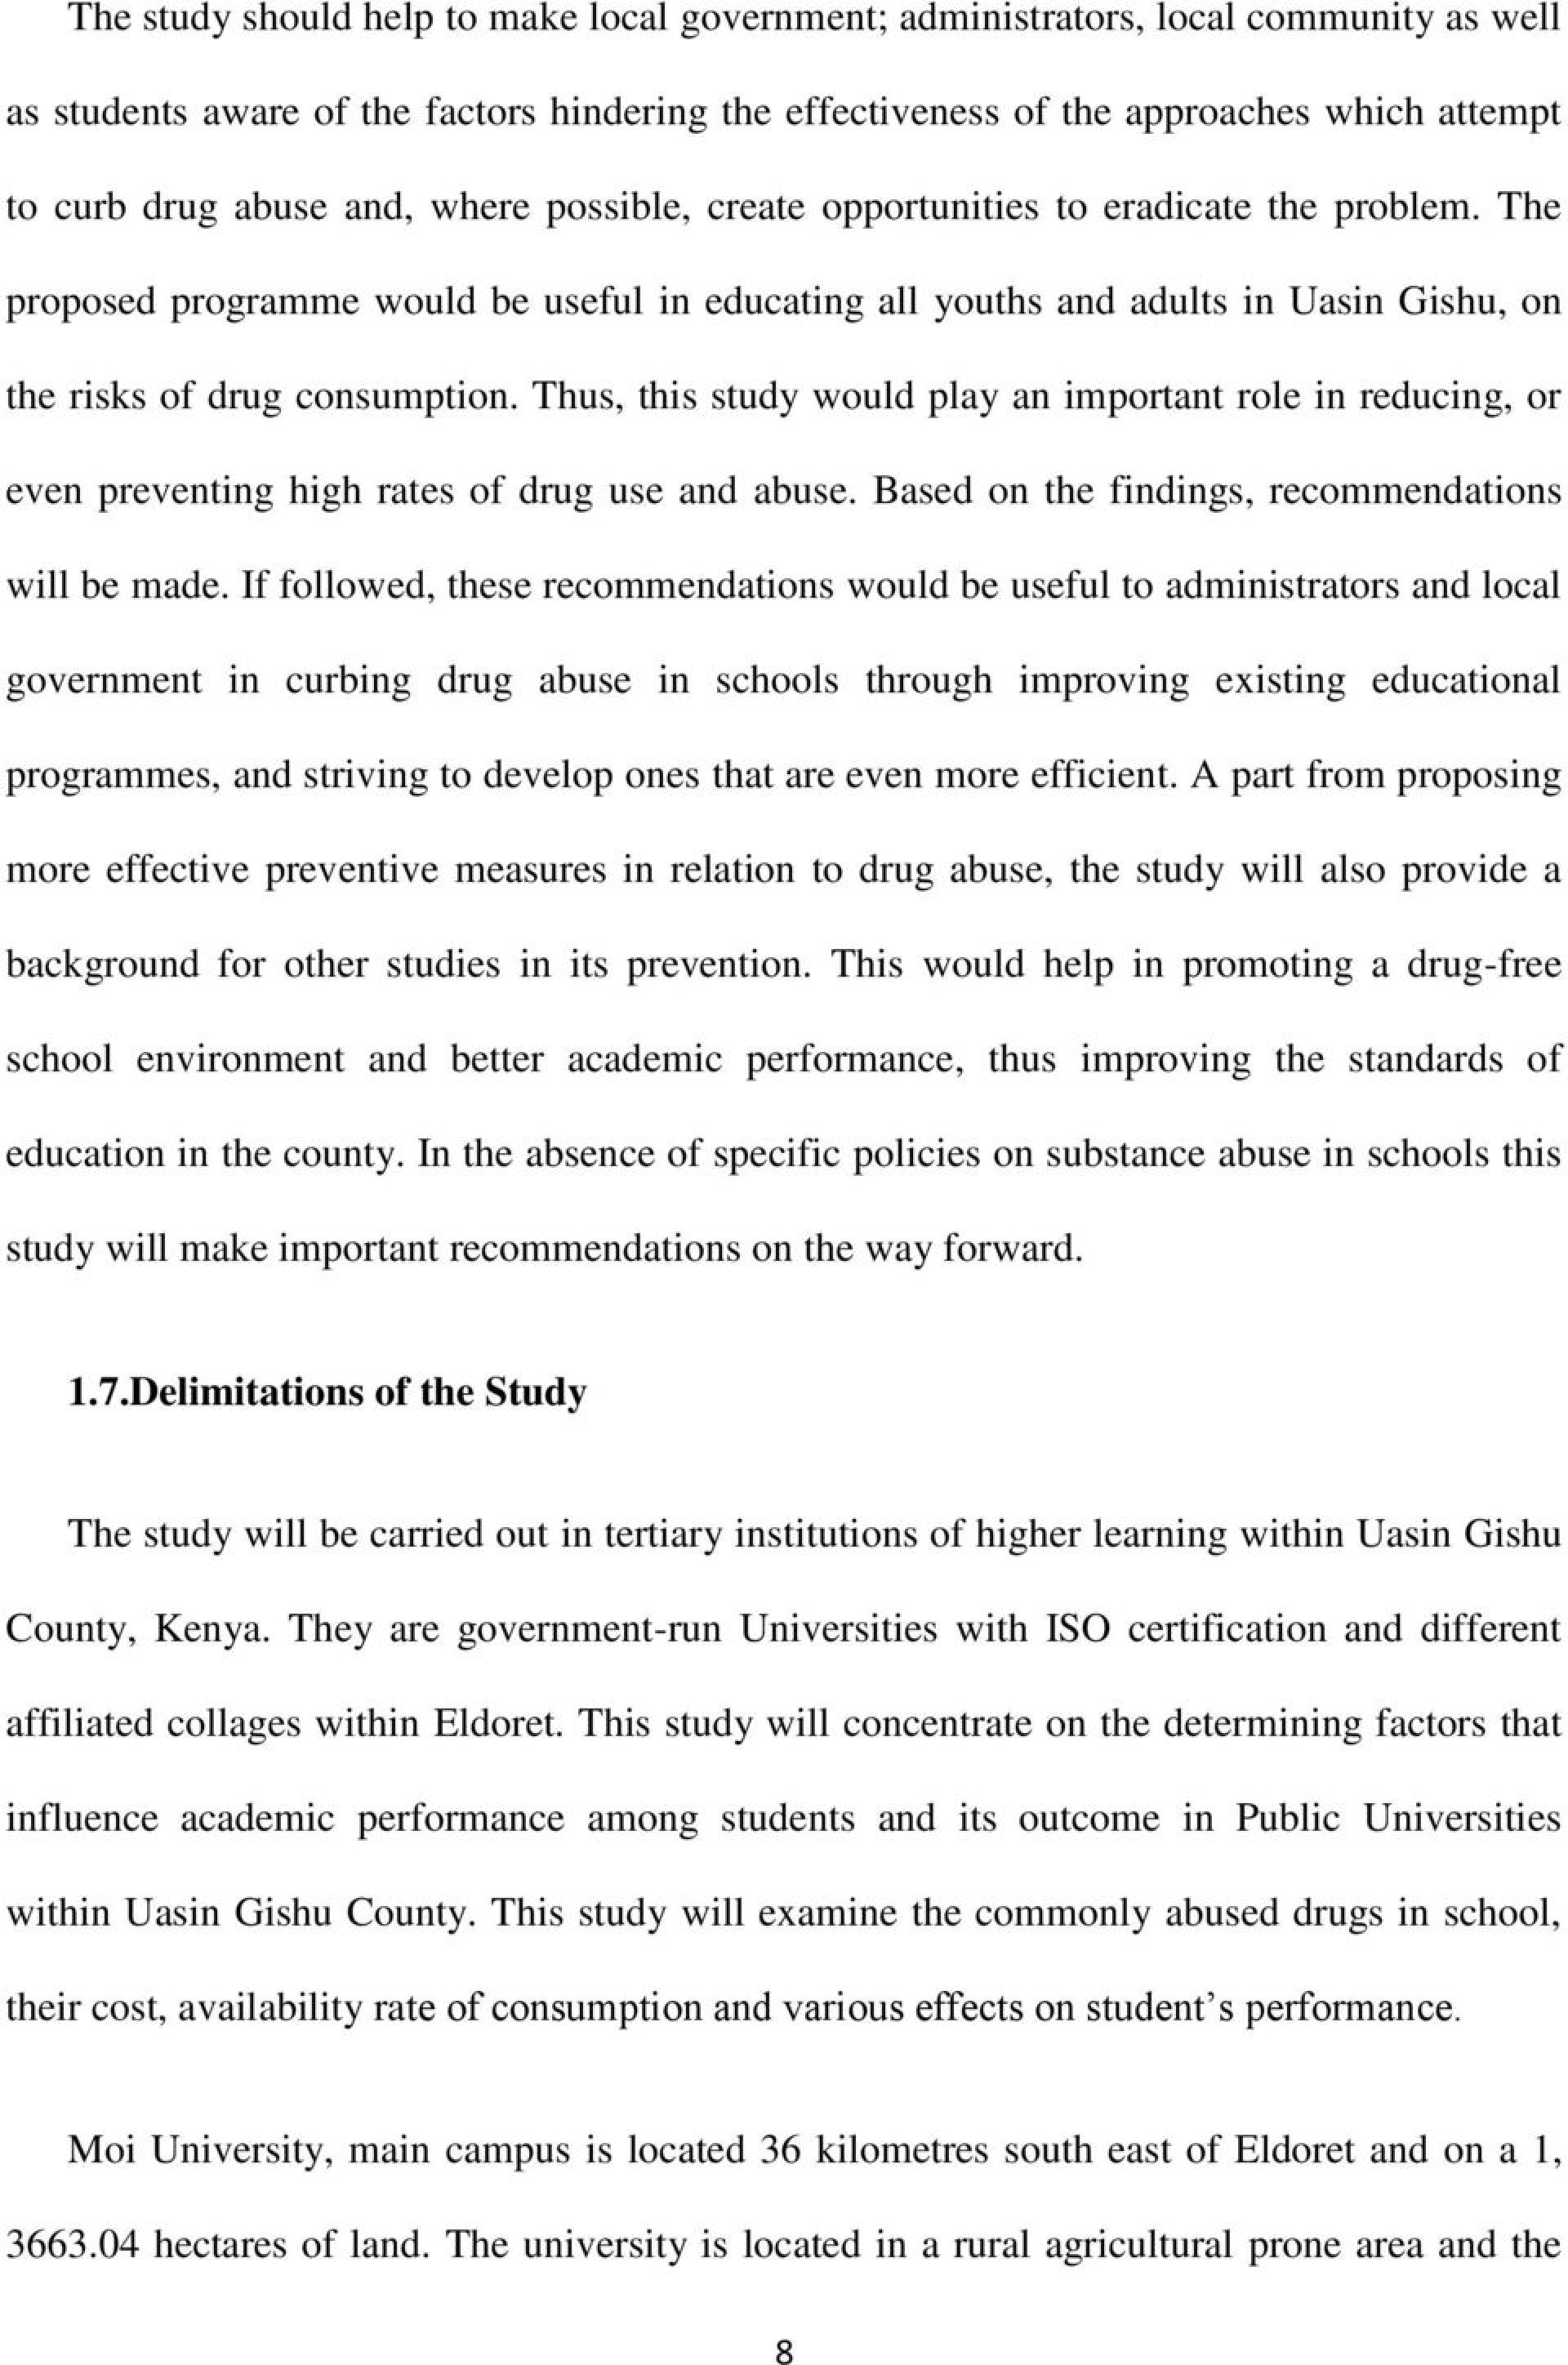 003 Addiction Essay Drugs Essays Drug Topics Abuse College Pa In Students Magnificent About Selfie Hindi Internet Smartphone Conclusion 1920